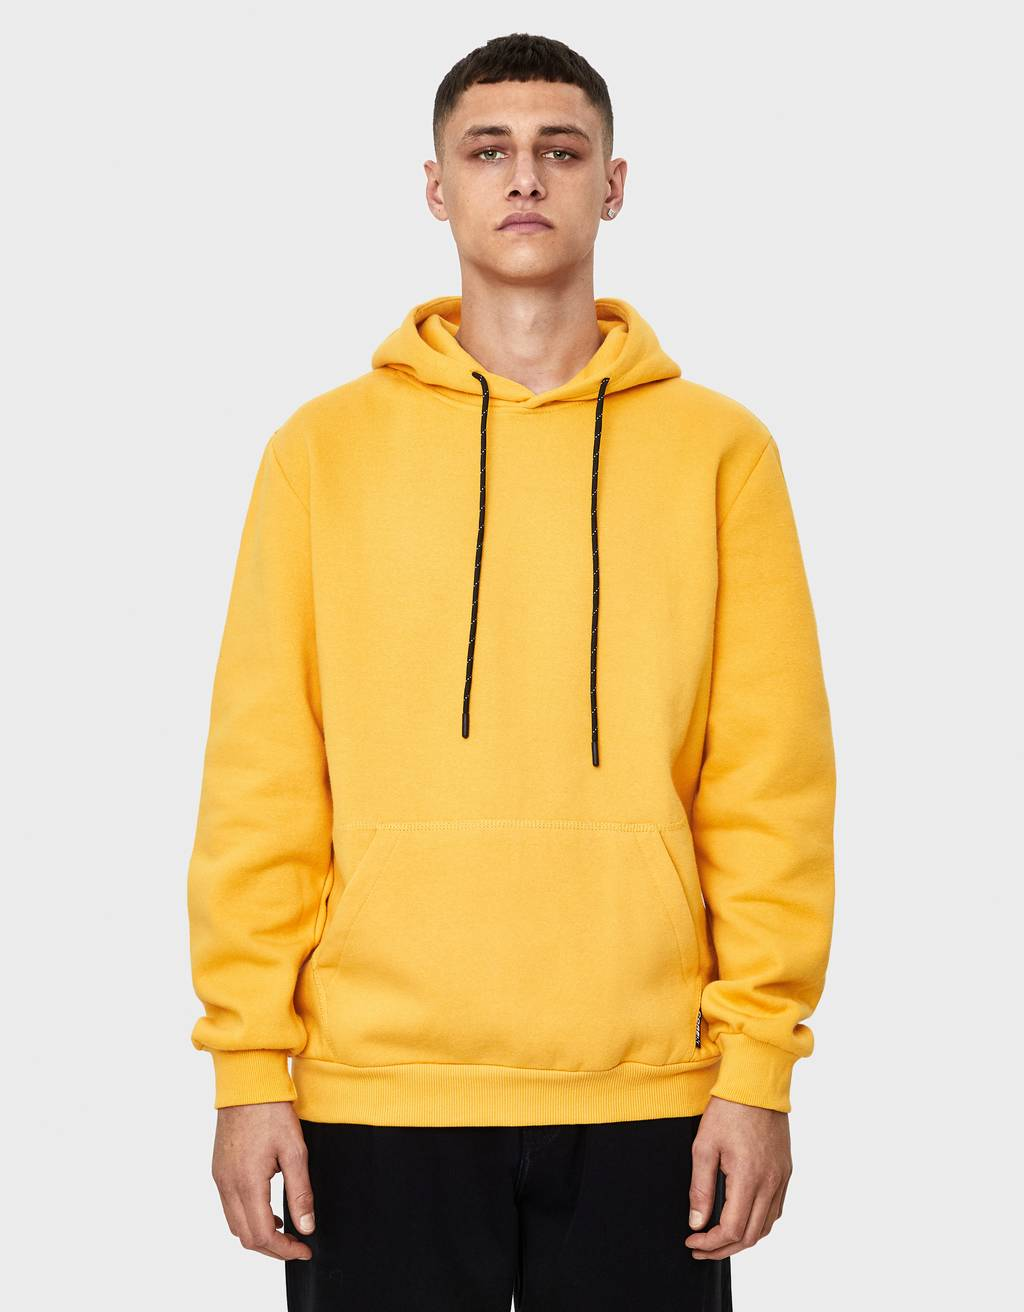 Hoodie